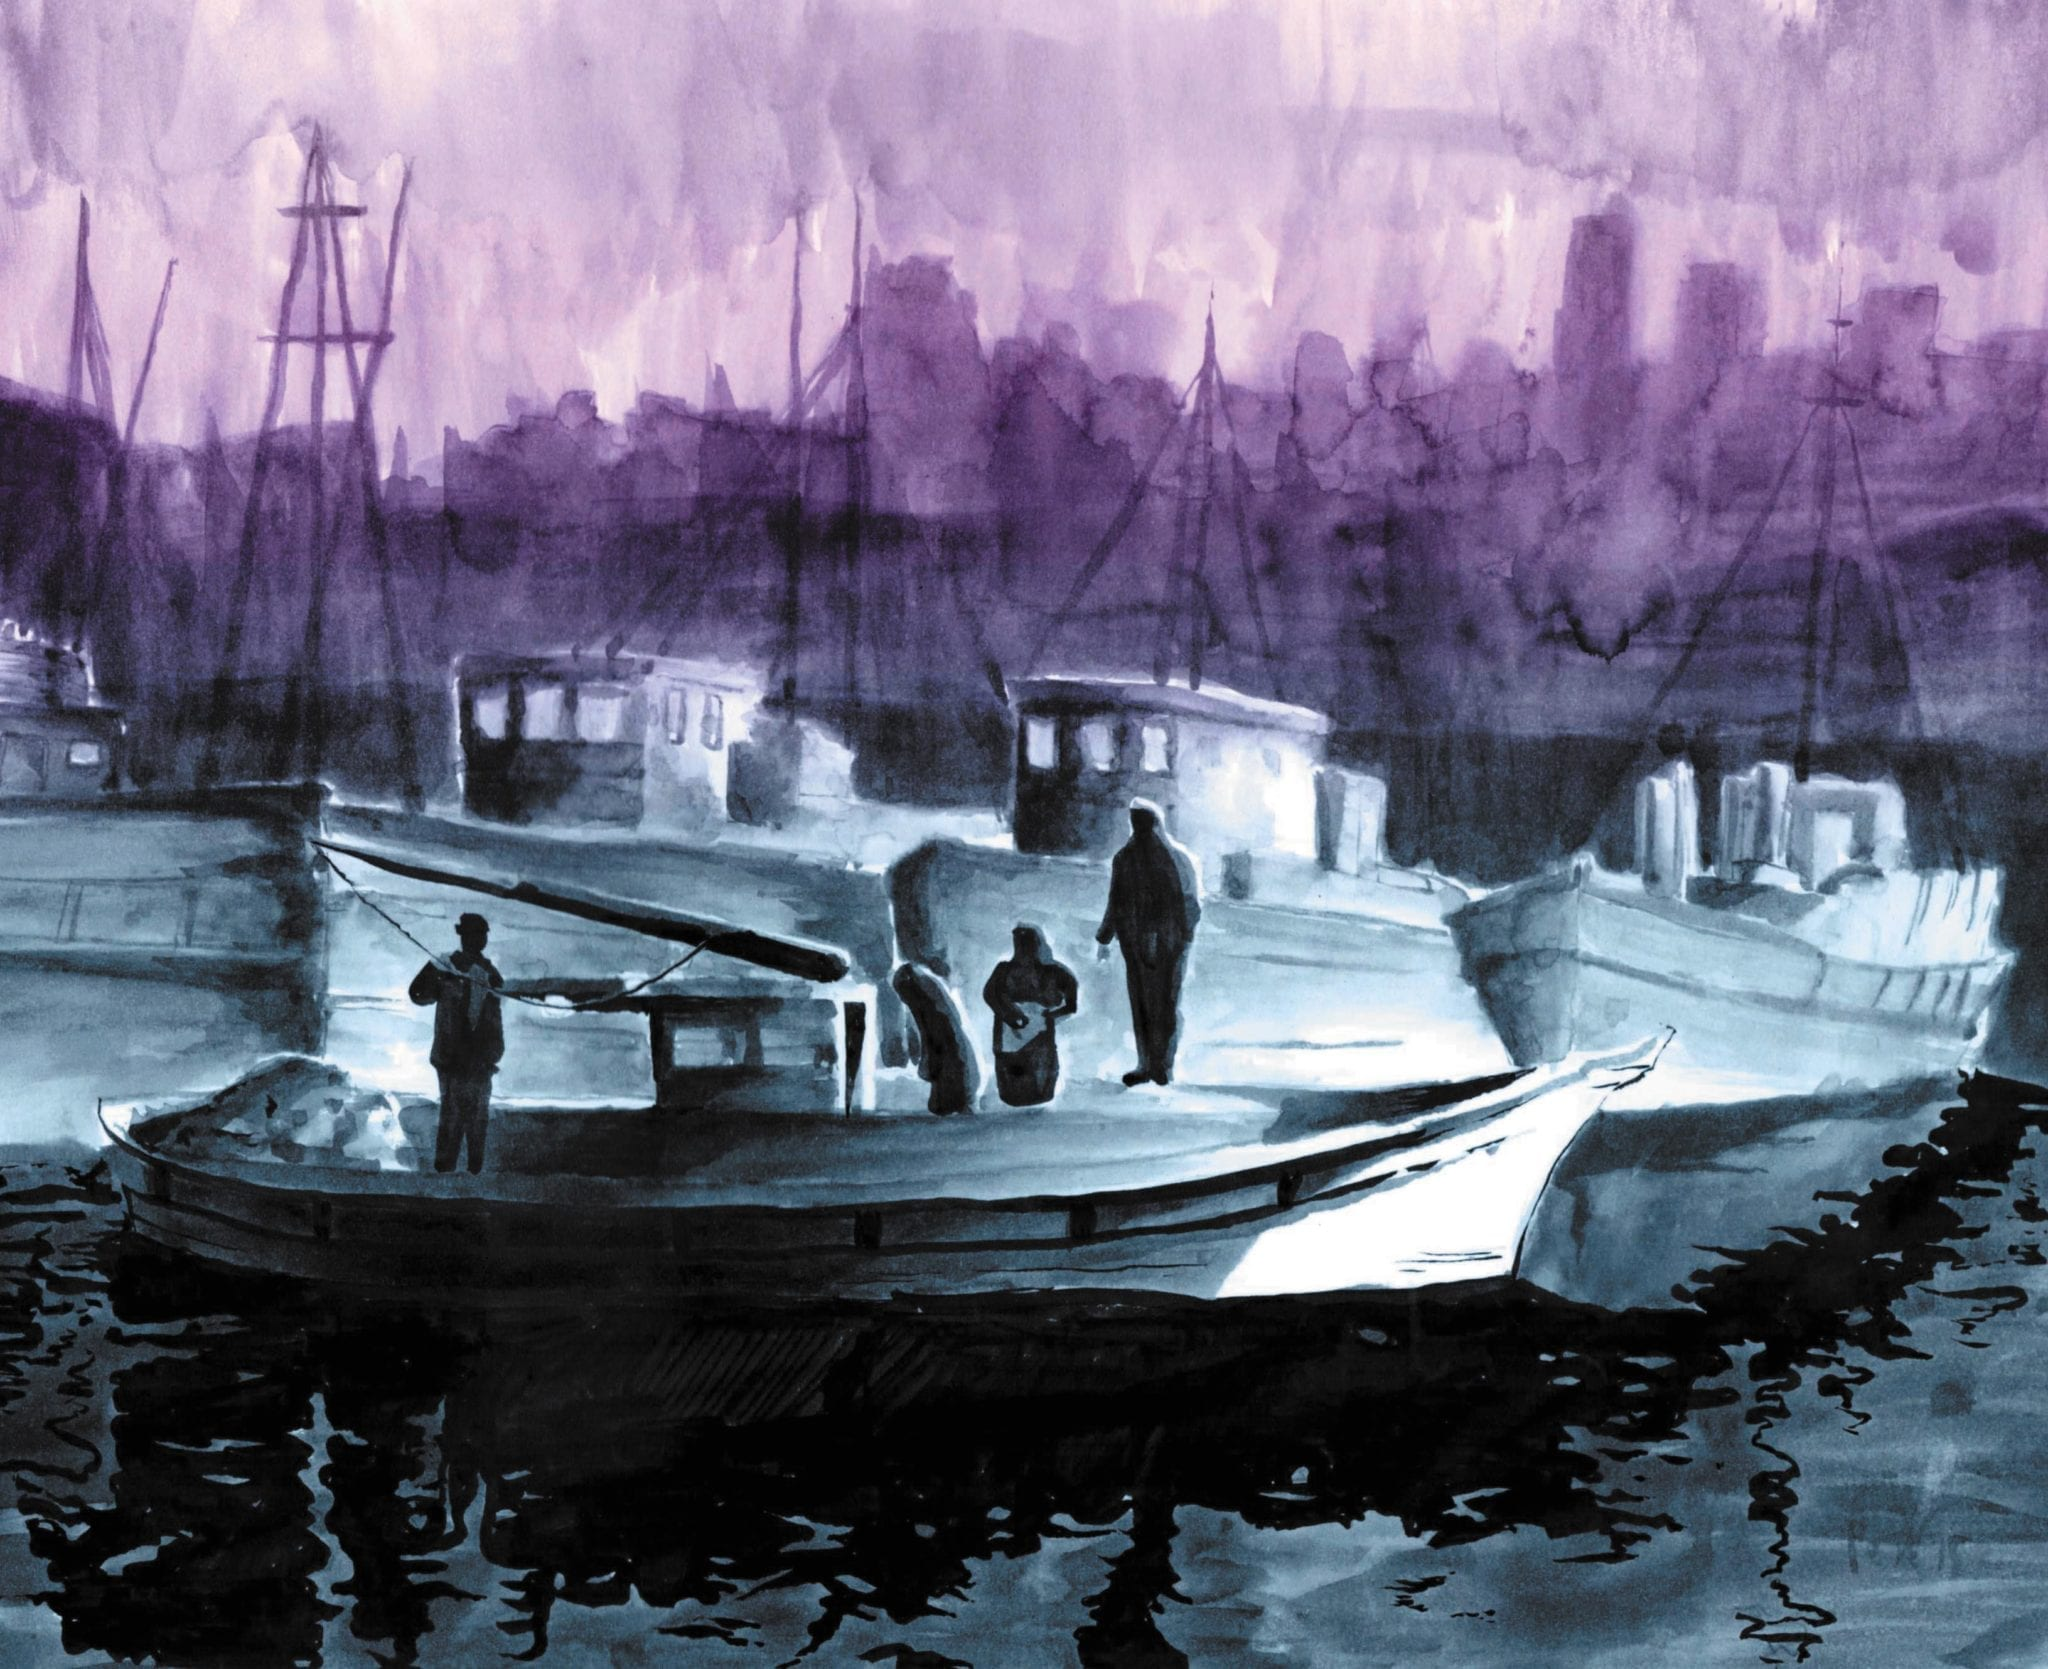 Boats art by Peter Glanting